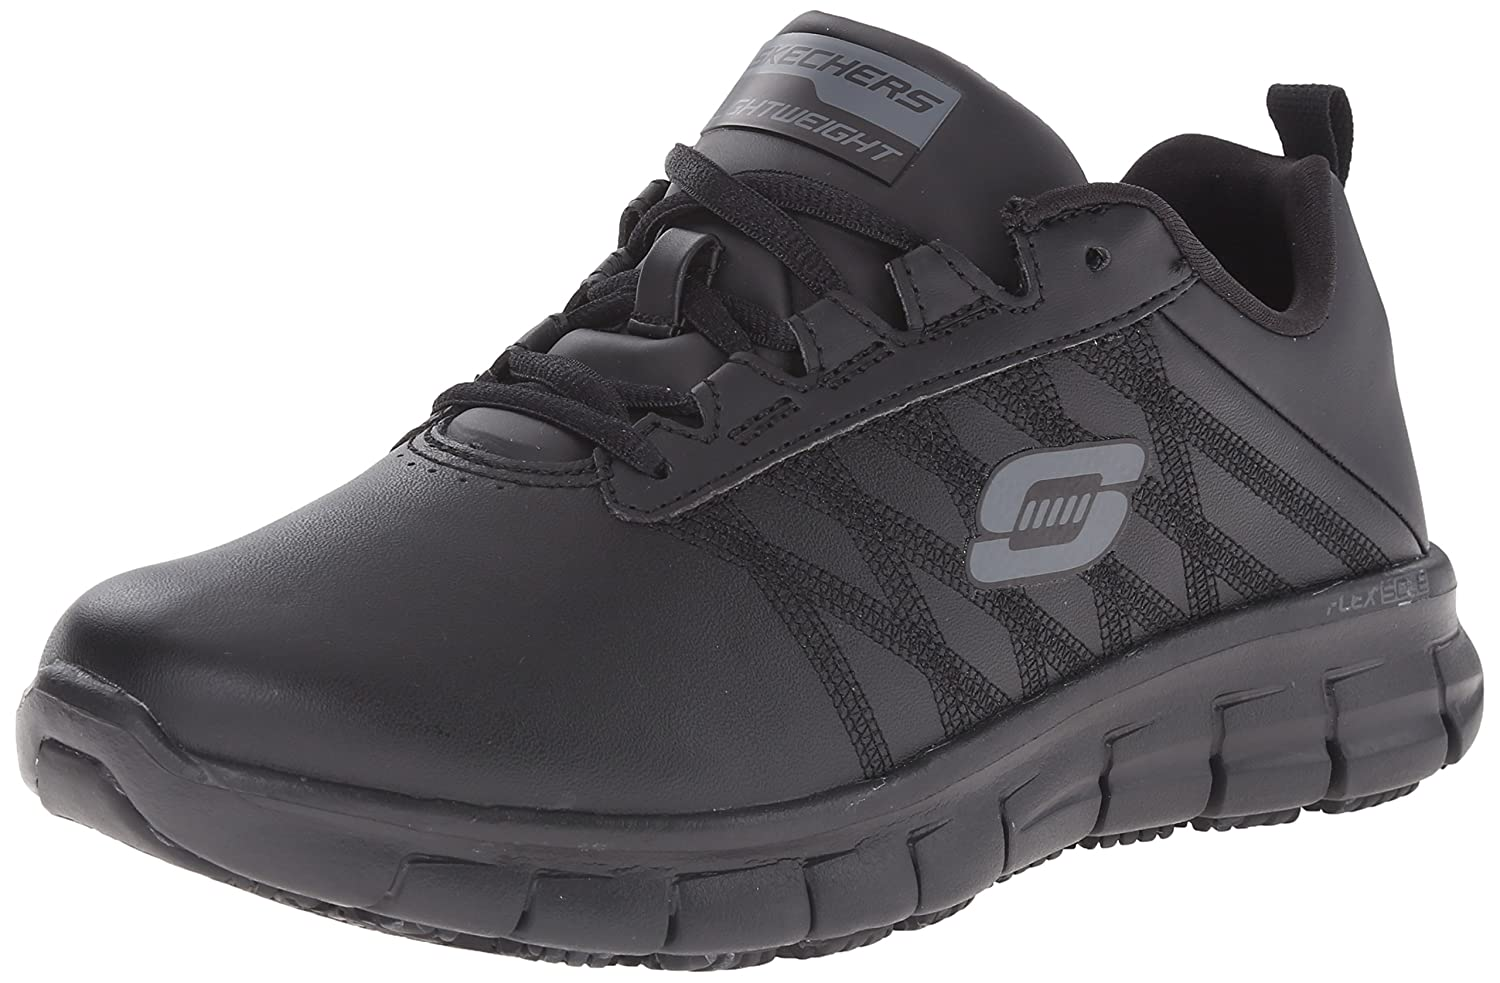 Skechers for Work Women's Sure Track Erath Athletic Lace Slip Resistant Boot B00UBJ23KU 7.5 B(M) US|Black